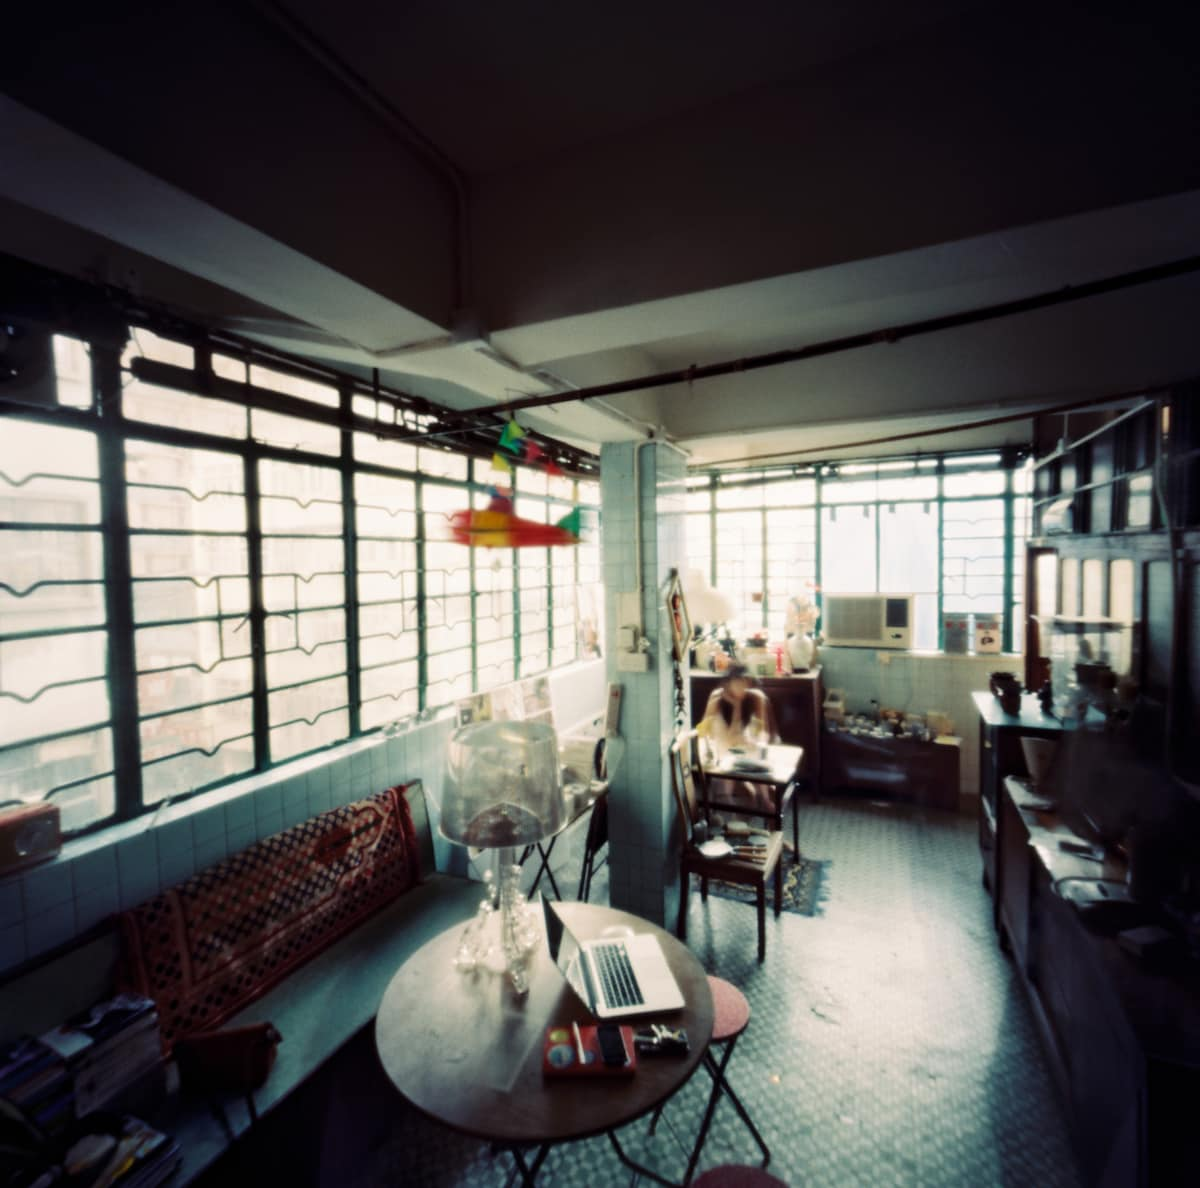 SSS studio space. Pinhole photo by Martin Cheung